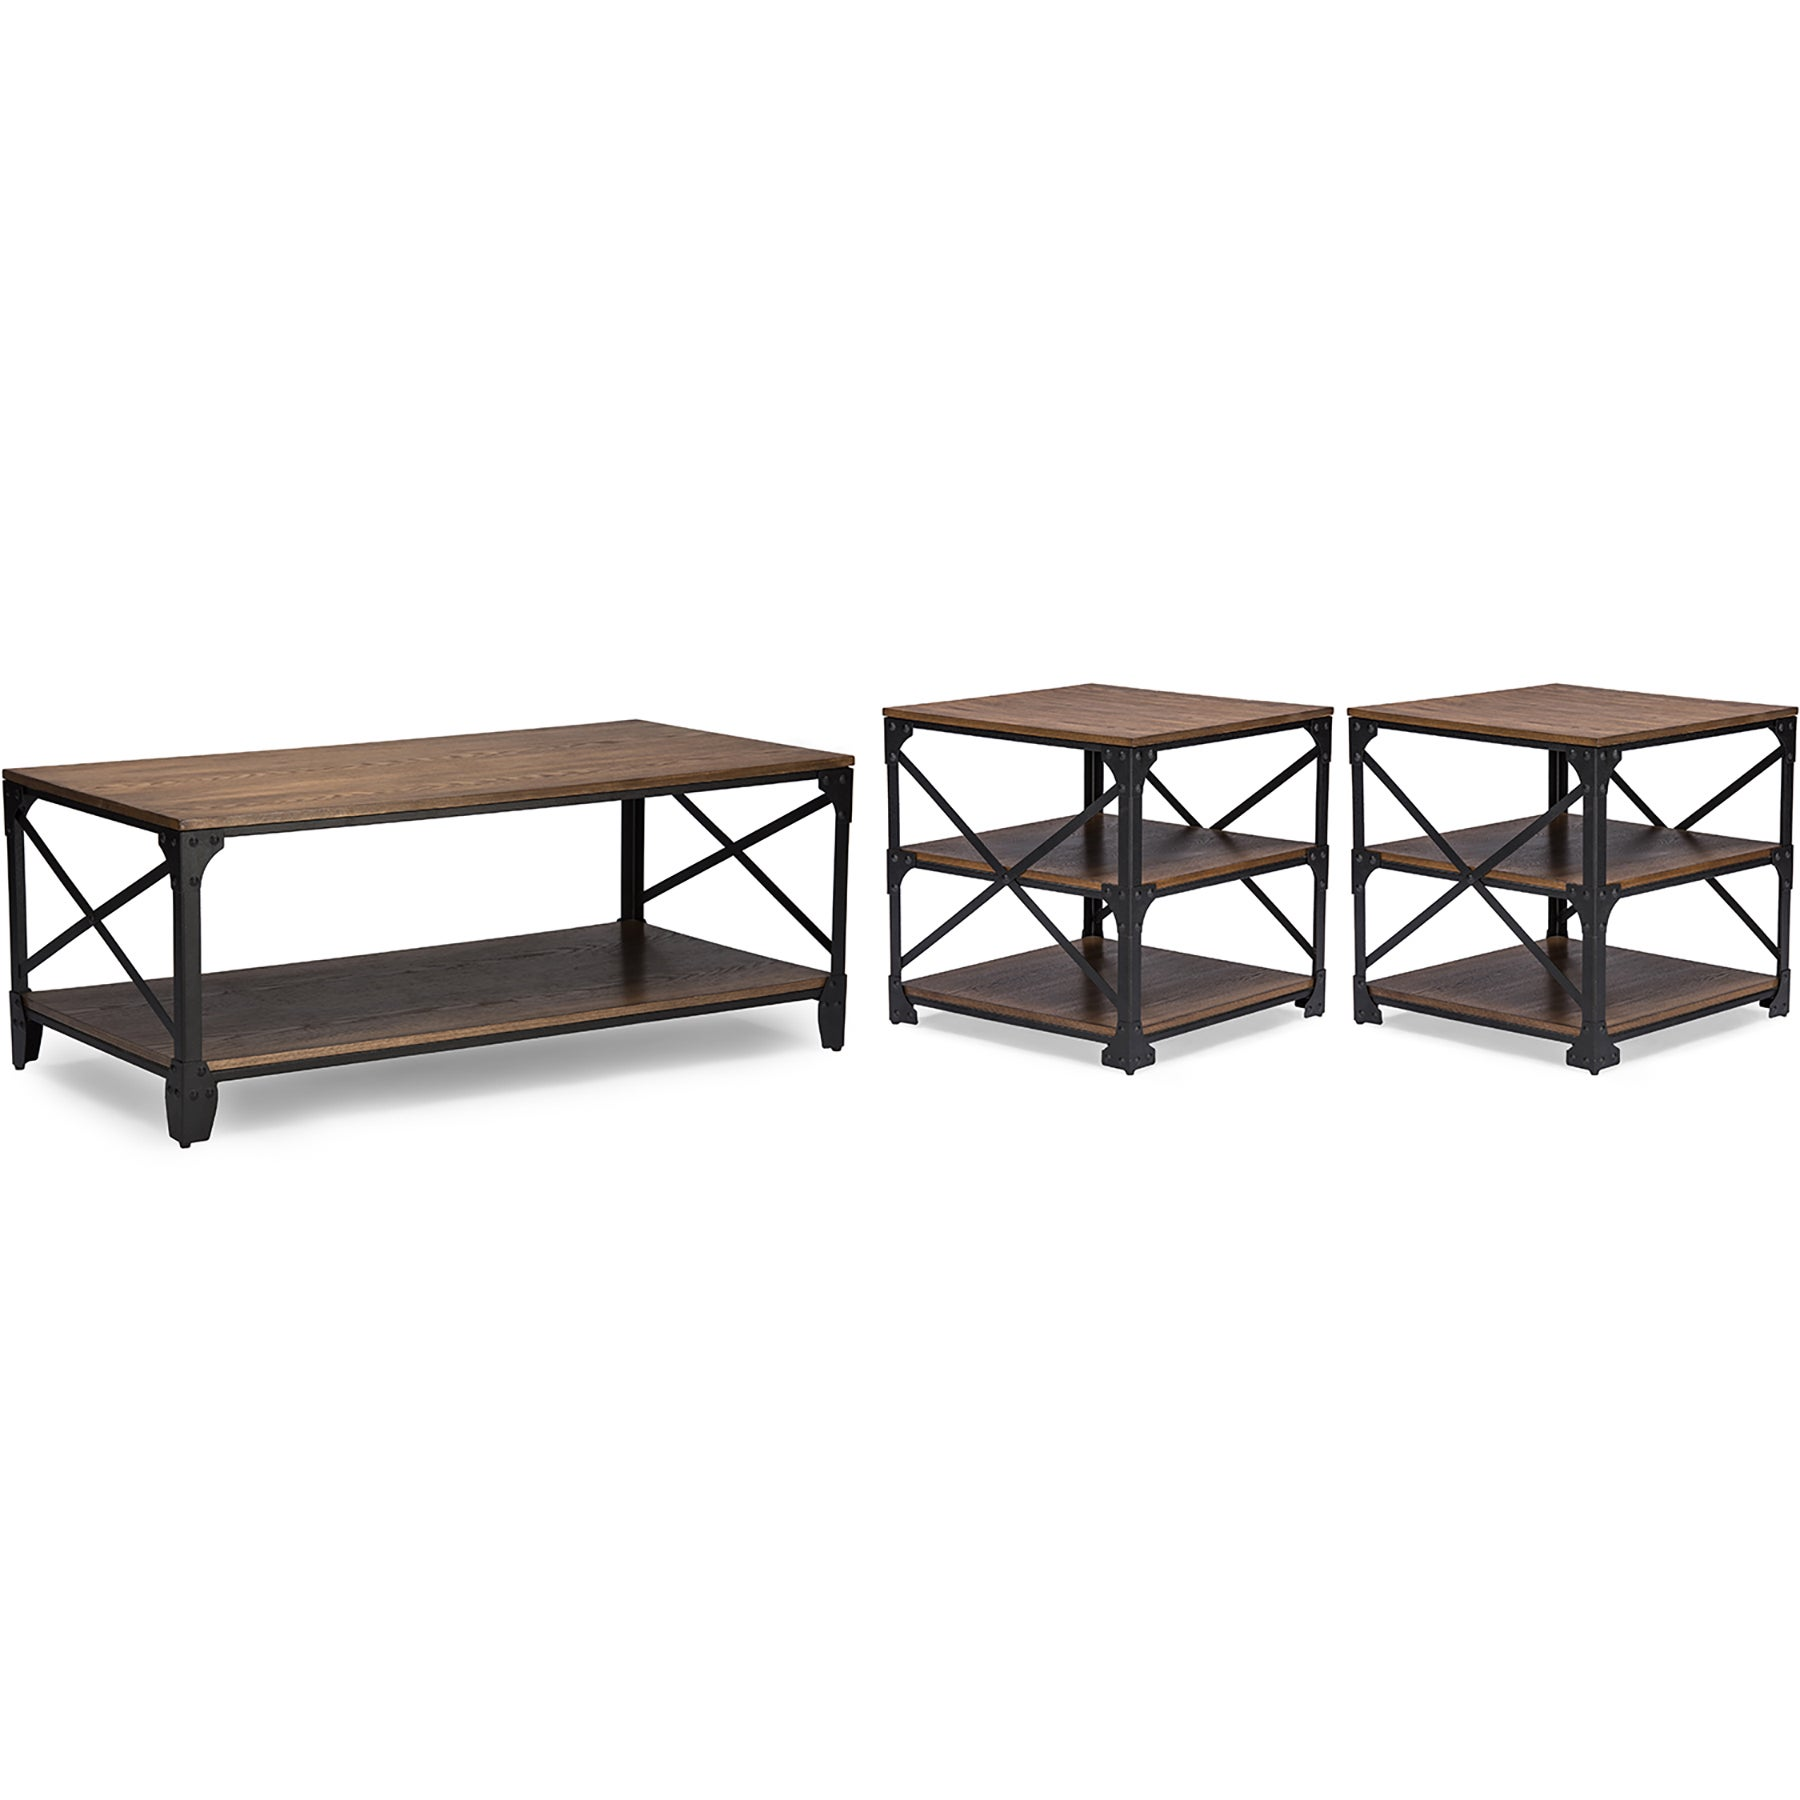 Charmant Shop Greyson Vintage Industrial Antique Bronze Round Coffee Cocktail Table  And End Tables 3 Piece Occasional Table Set   Free Shipping Today    Overstock.com ...